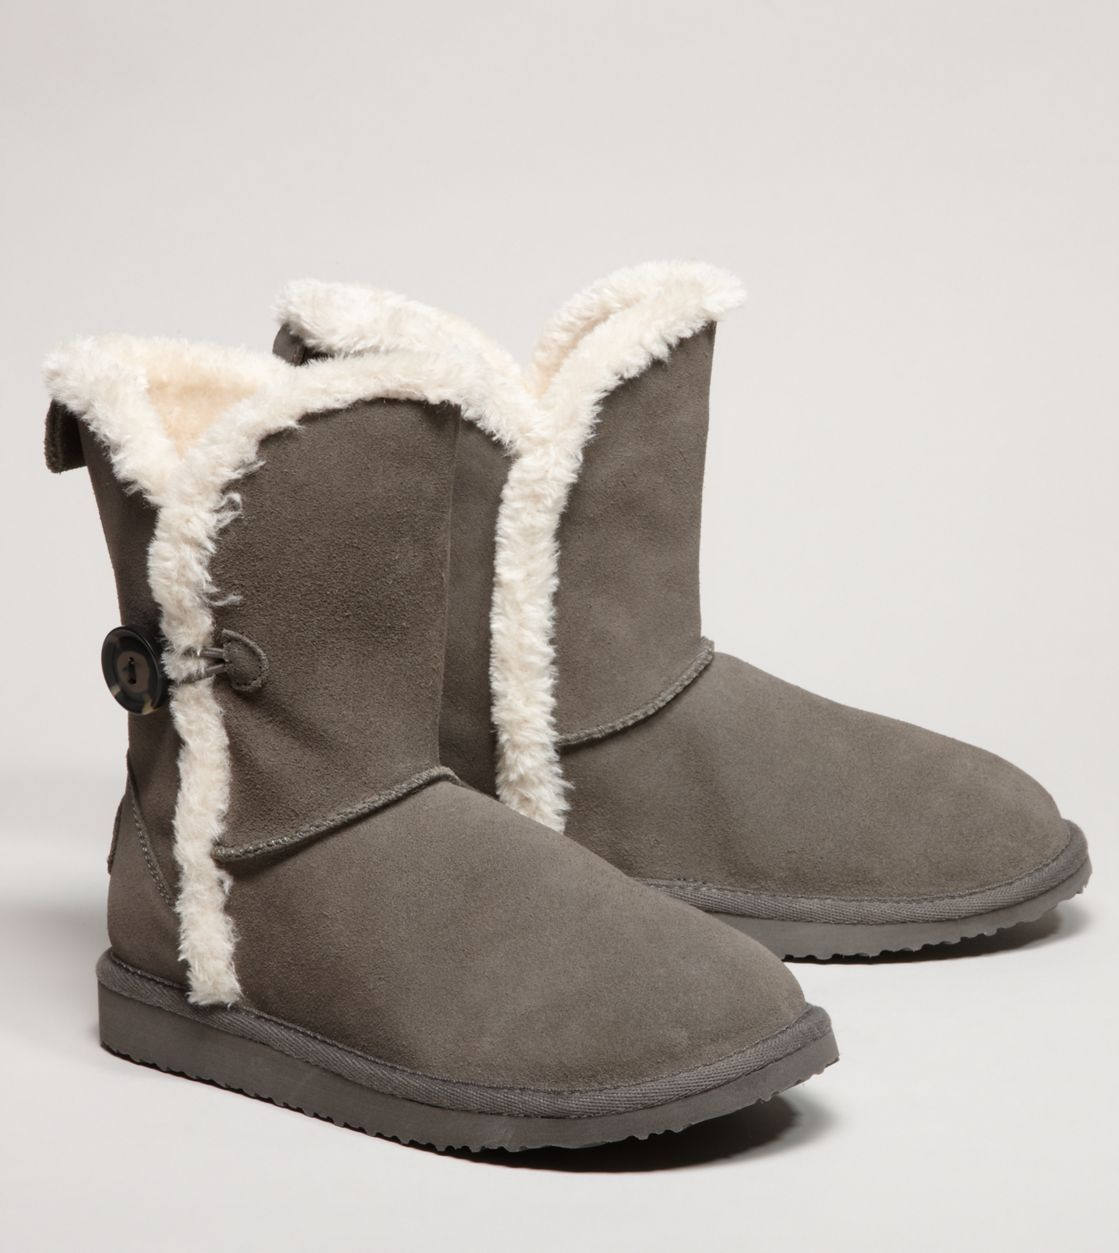 American Eagle snowboots